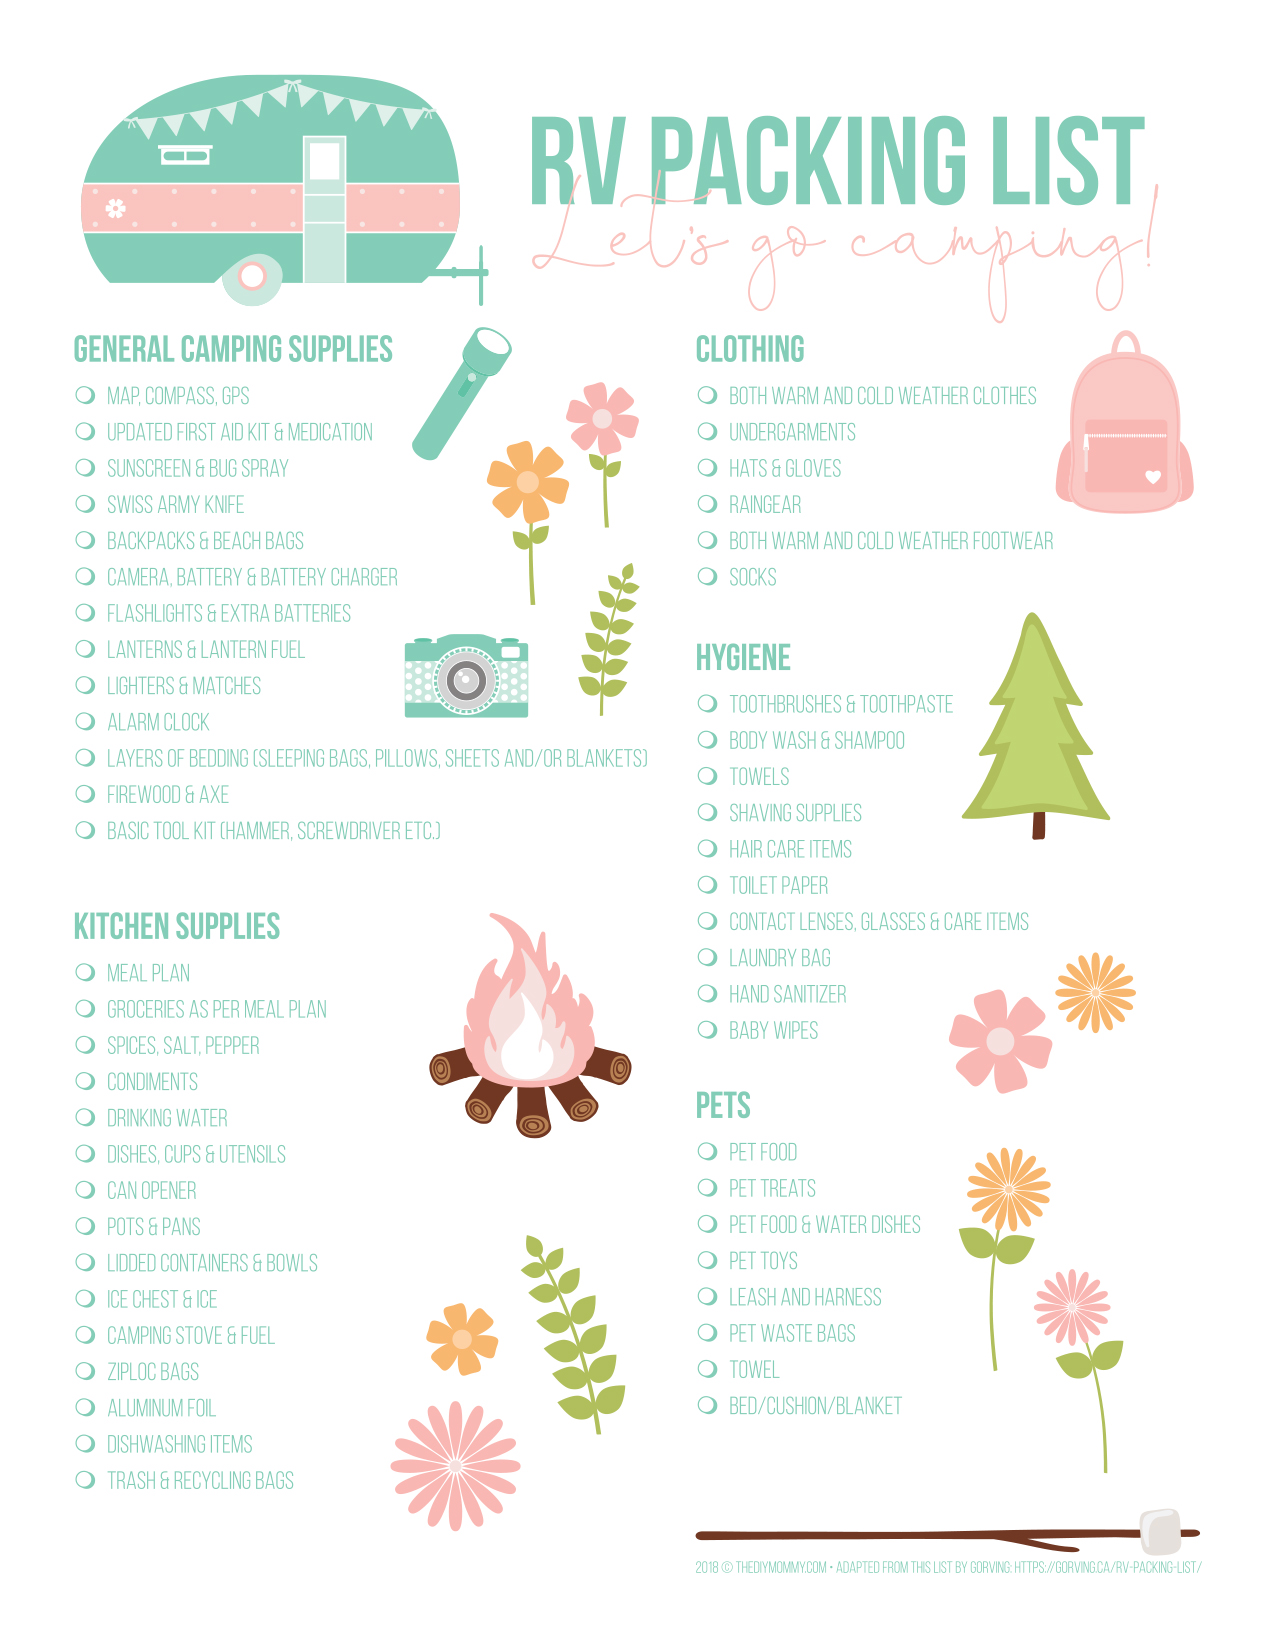 photograph regarding Camping Food List Printable identify RV Packing Record Absolutely free Printable (and its as a result lovely!) The